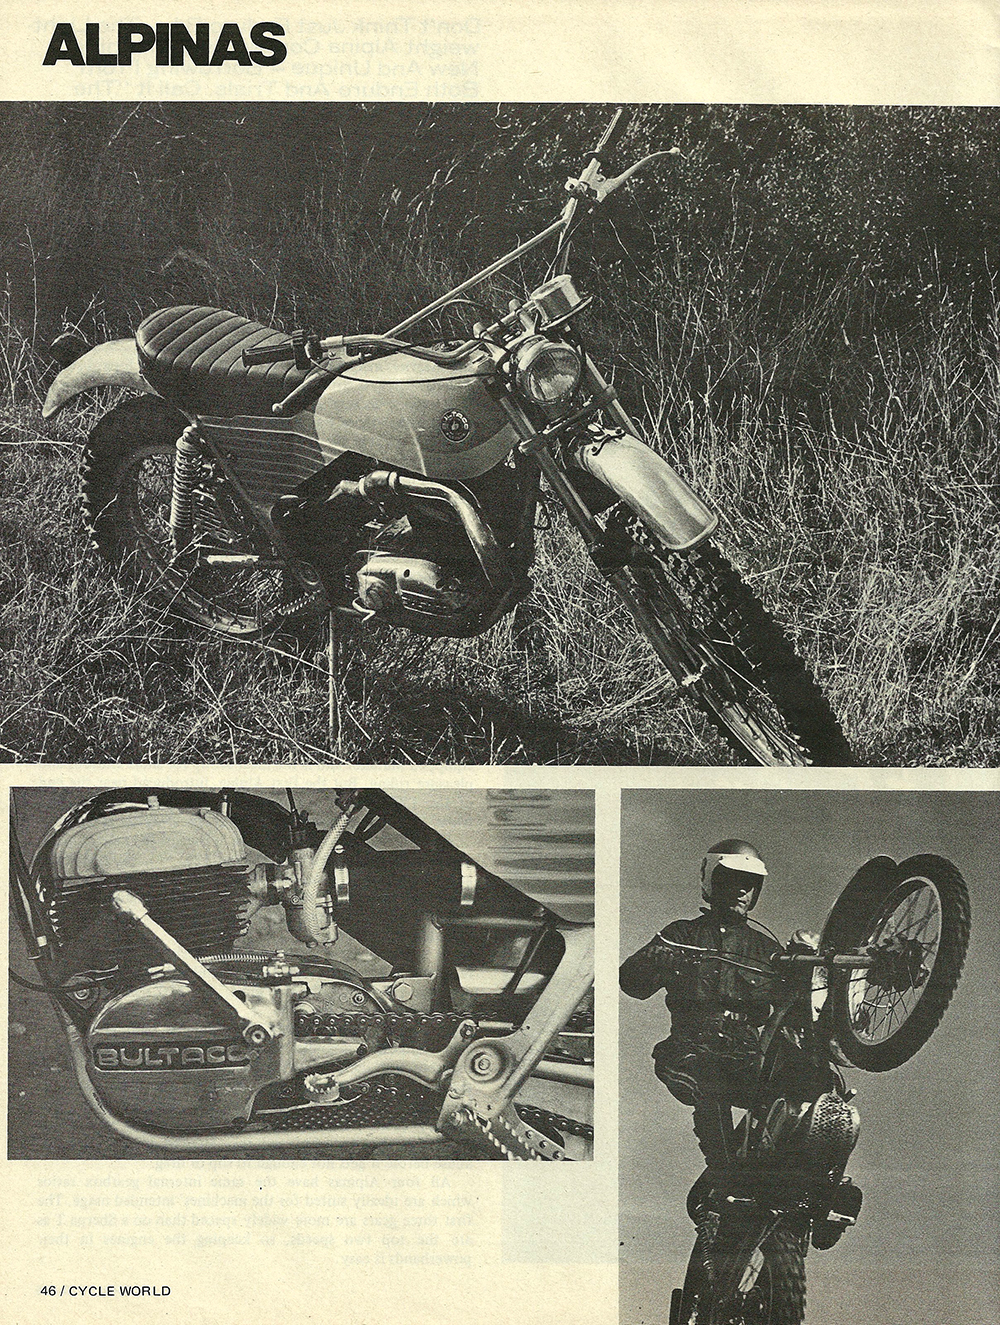 1973 Bultaco Alpina 175 350 road test 03.jpg